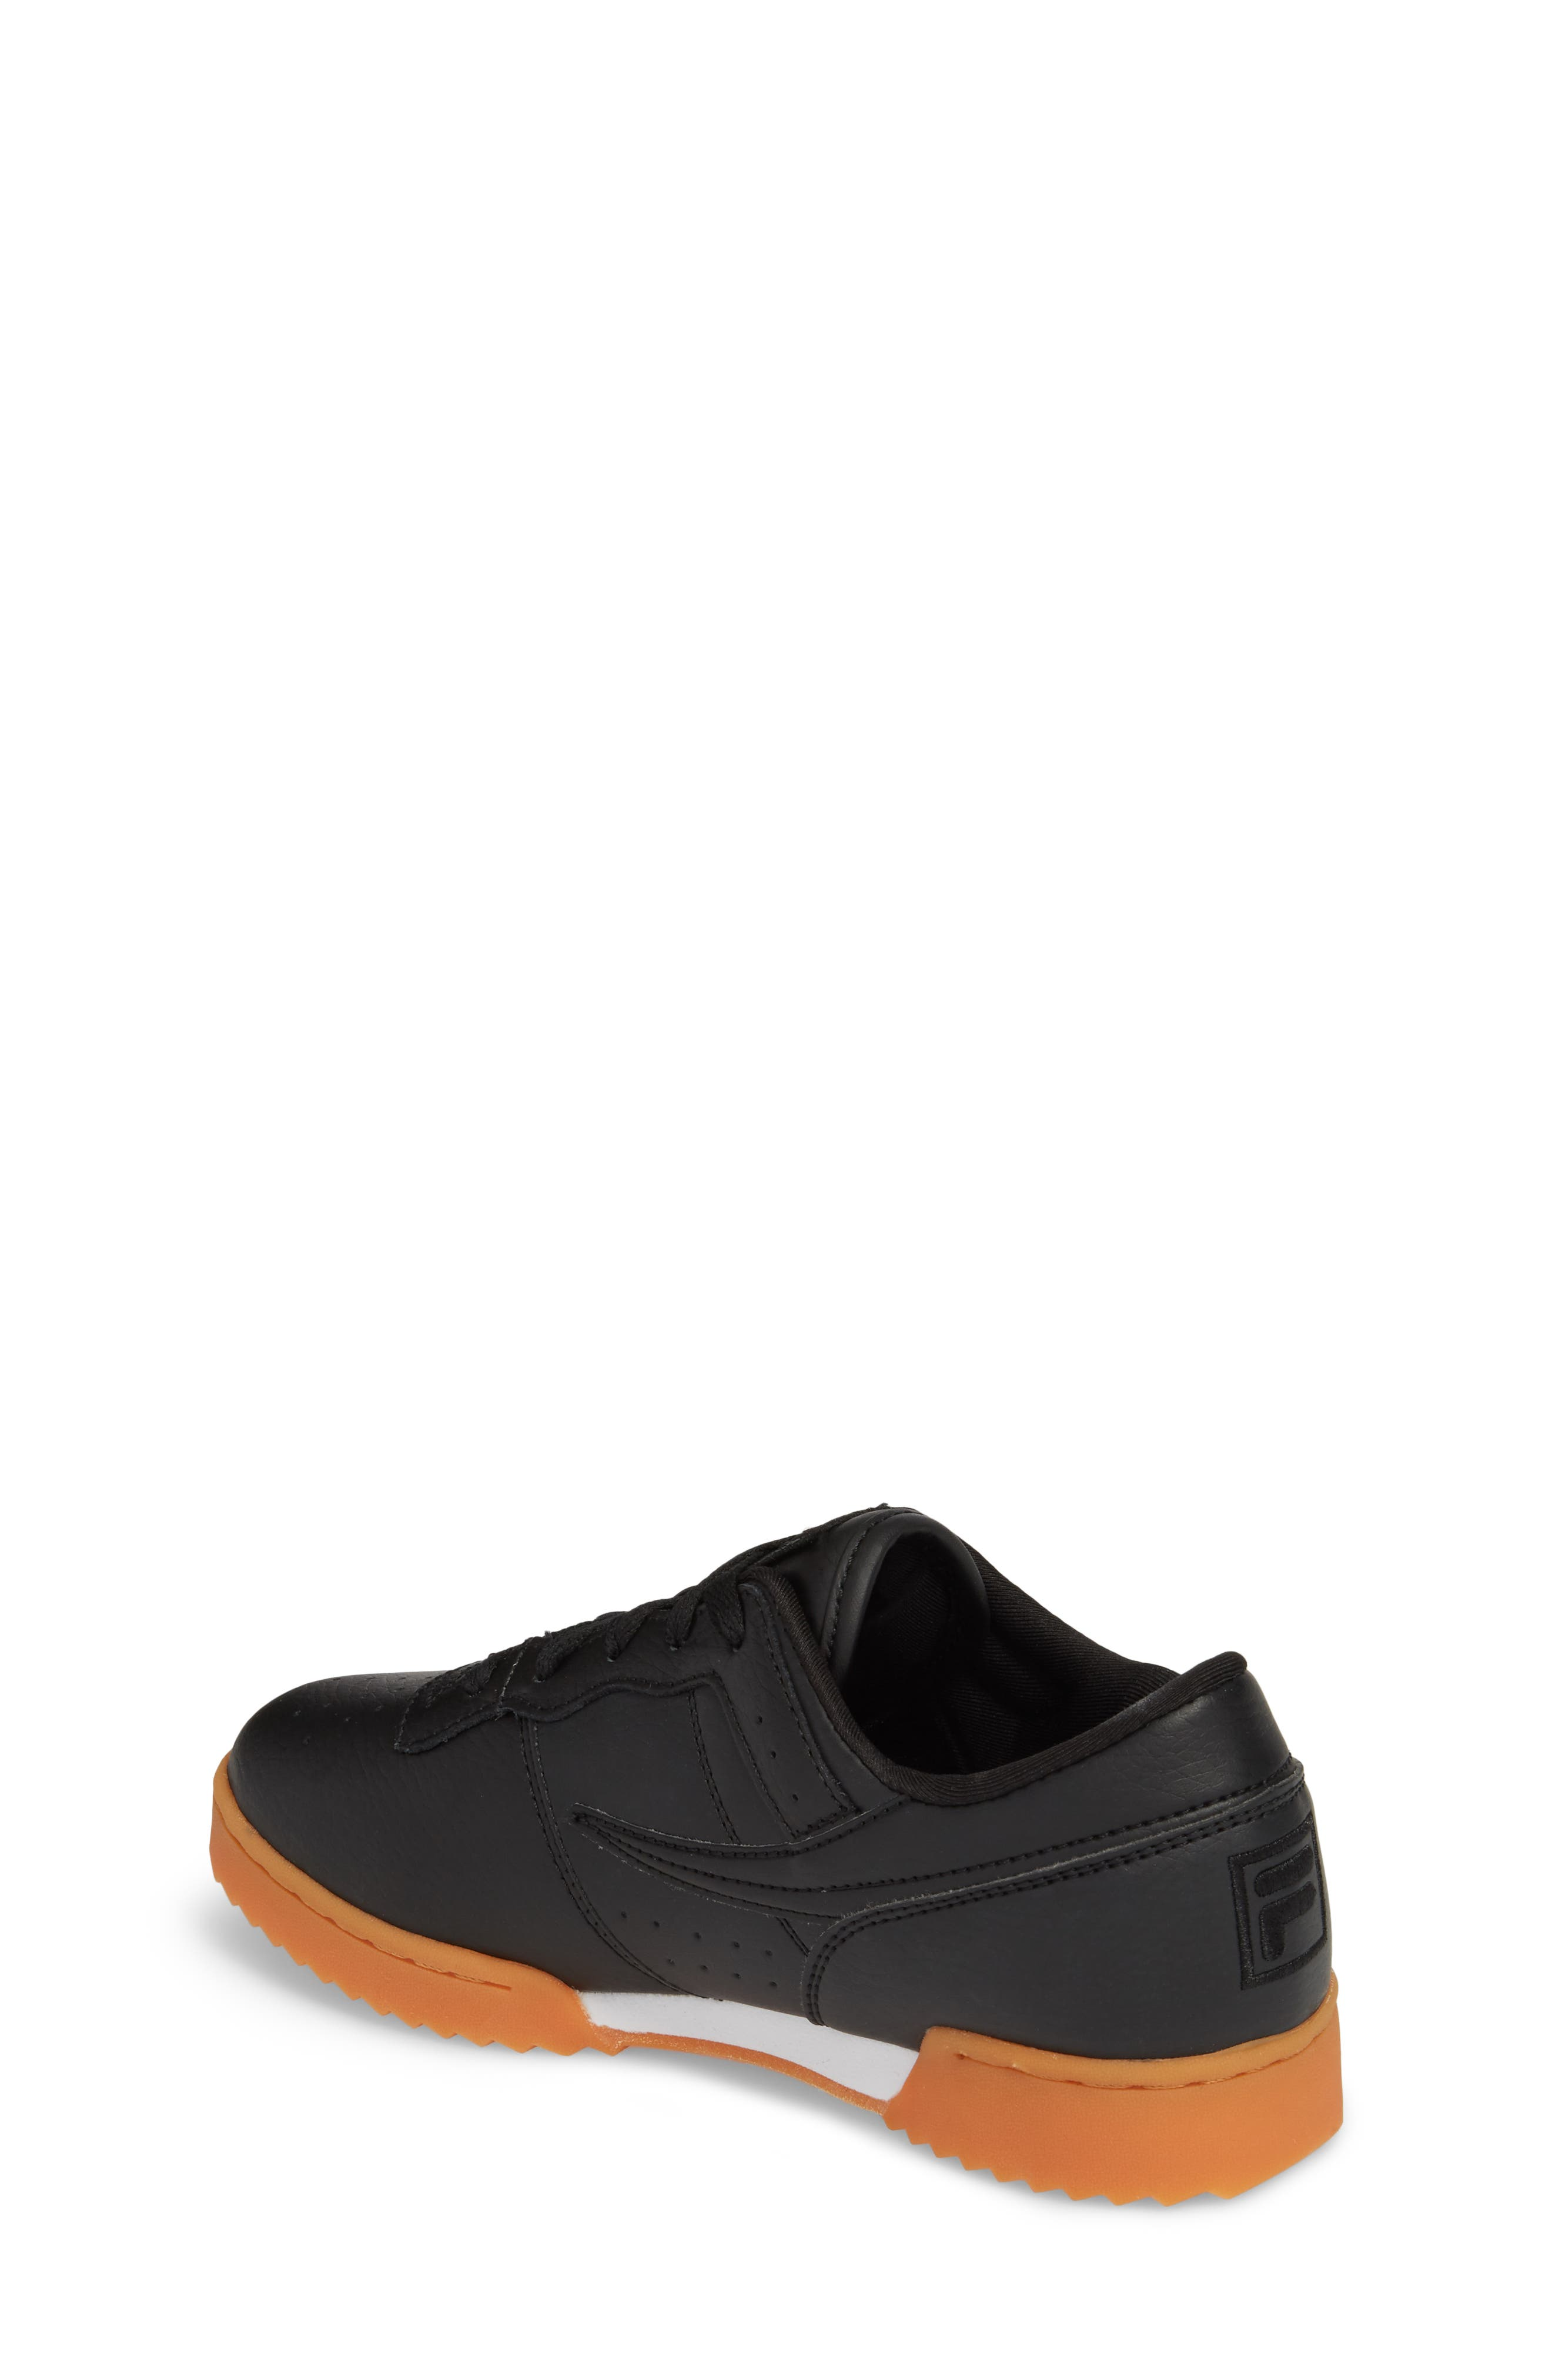 Original Fitness Sneaker,                             Alternate thumbnail 2, color,                             Black/ Gum